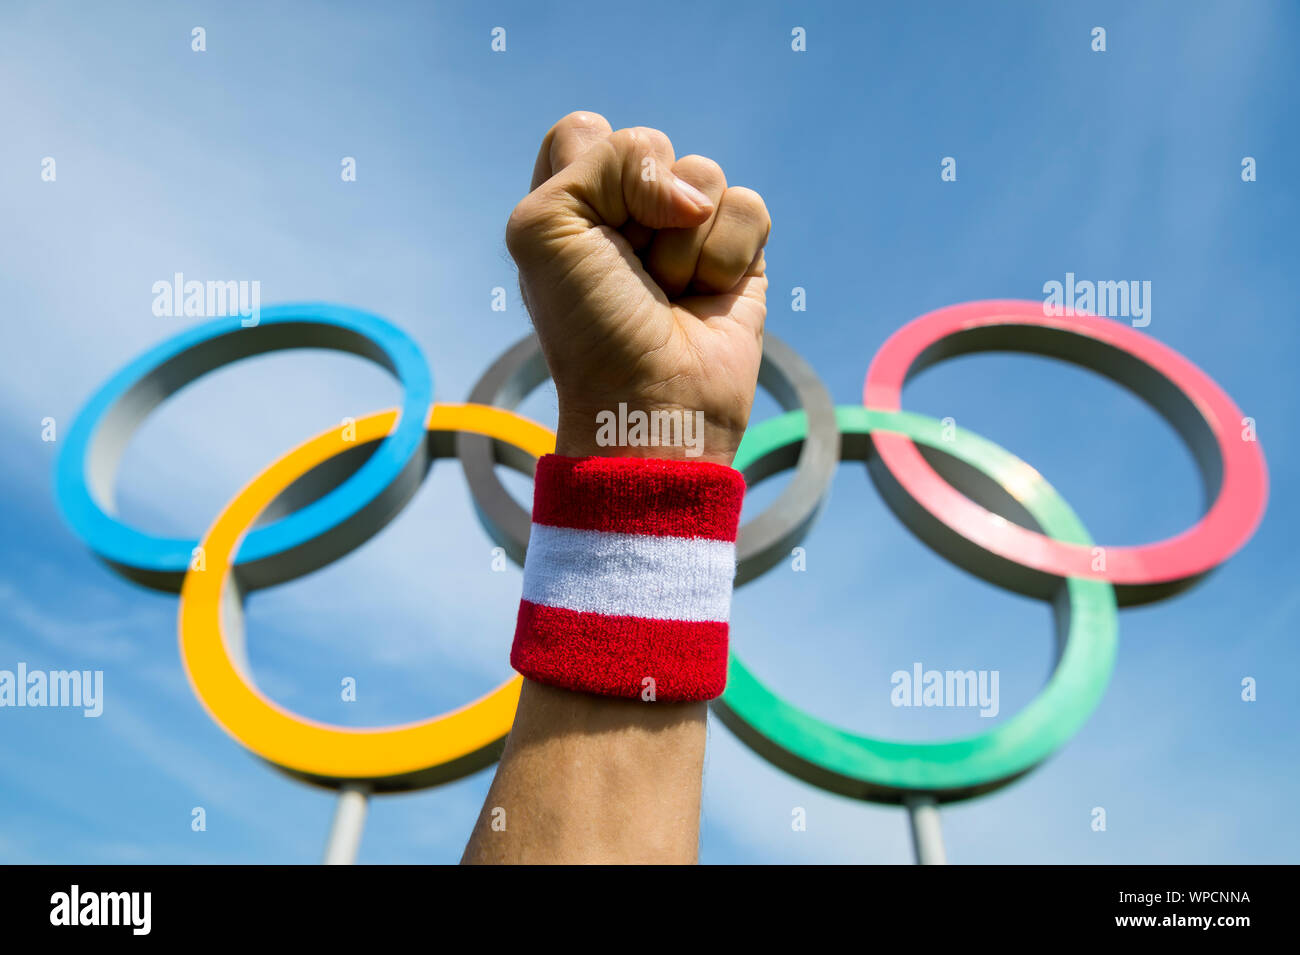 RIO DE JANEIRO - MARCH 15, 2016: A hand wearing red and white Team Japan wristband punches the air in front of Olympic Rings. Stock Photo